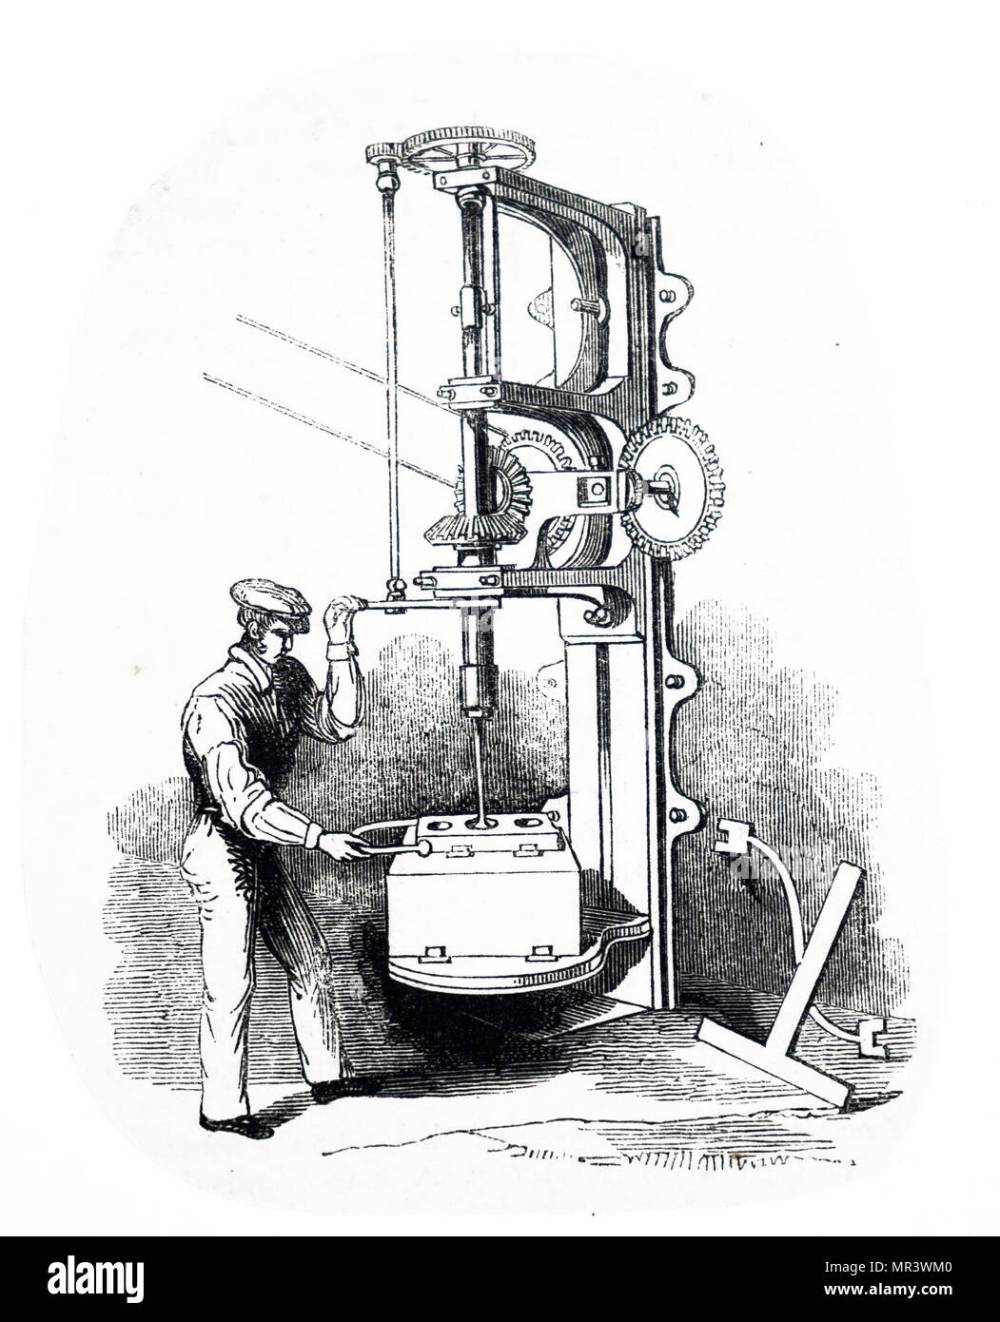 medium resolution of illustration depicting the boring of the cylinder of a steam engine vulcan foundry washington